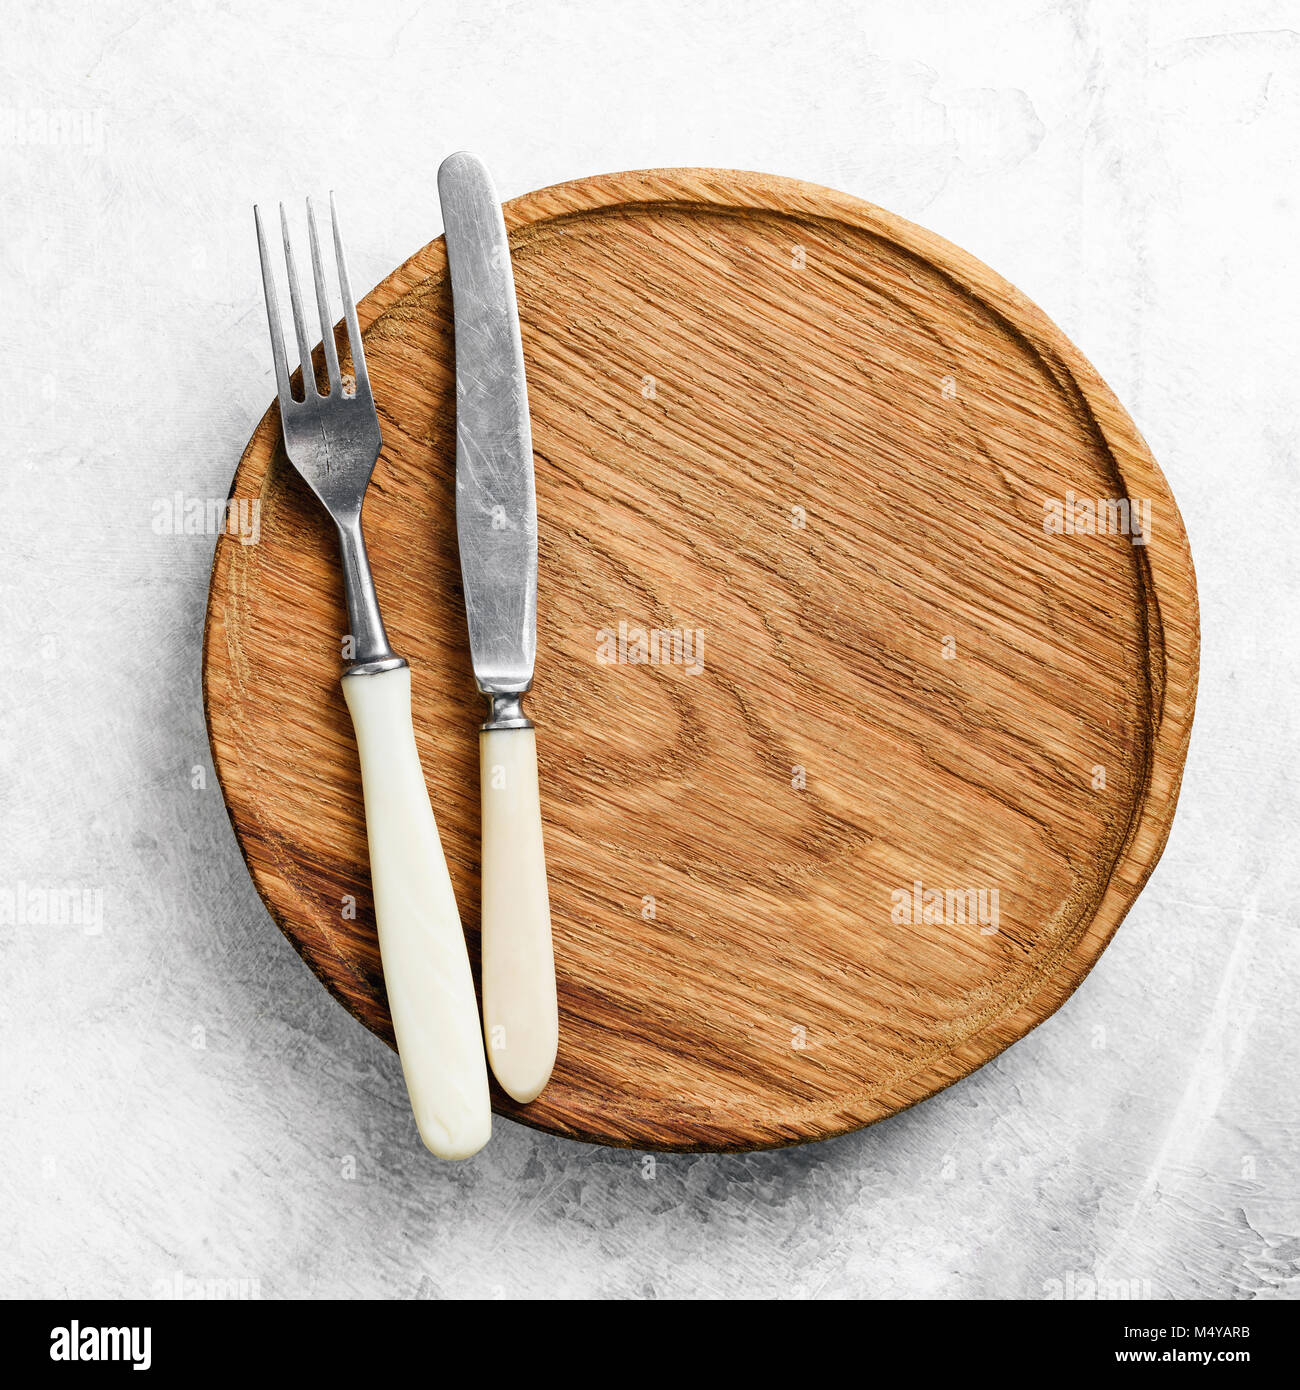 Table Setting With Vintage Cutlery And Wooden Plate Restaurant Menu Stock Photo Alamy